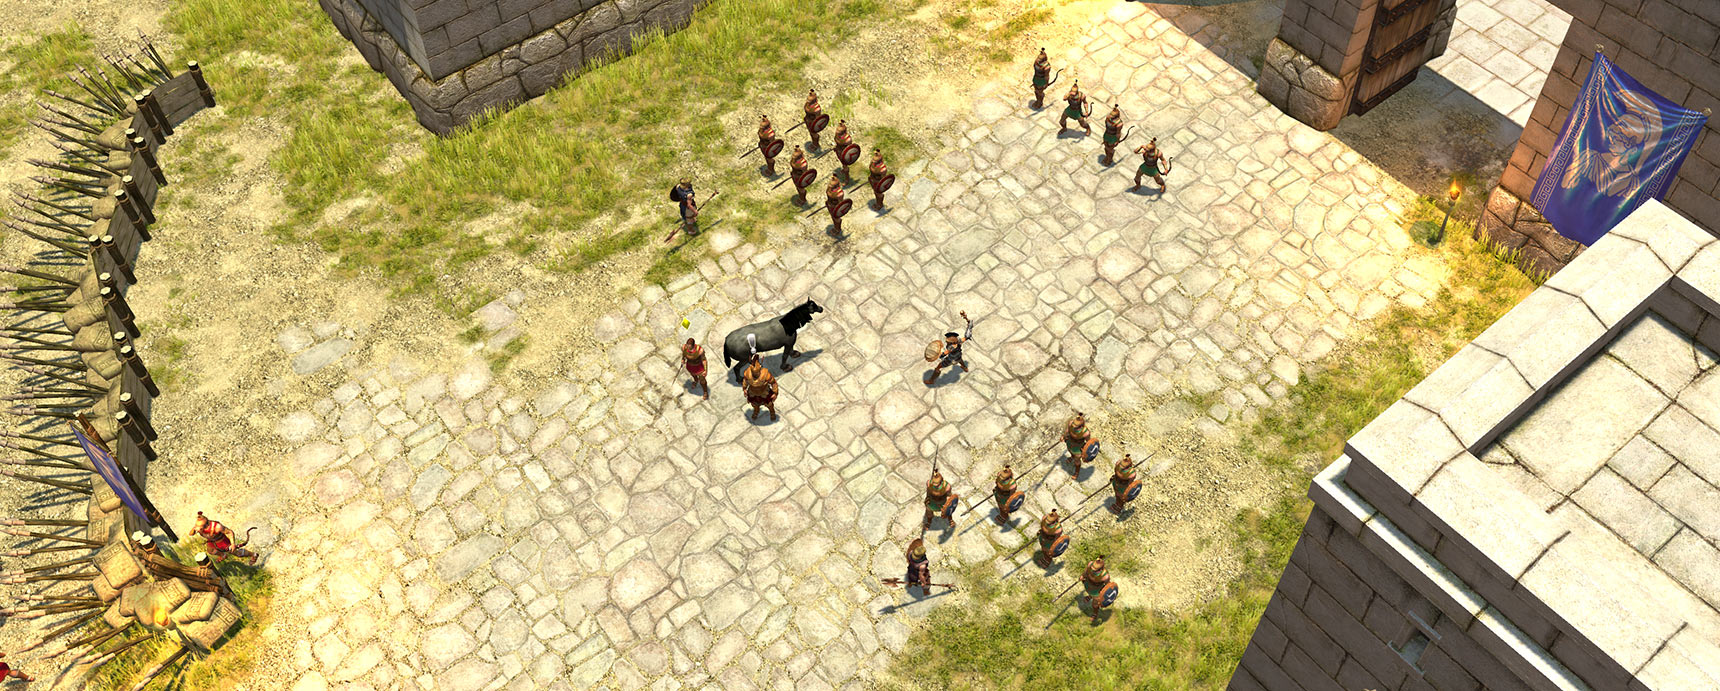 Titan Quest landscape screenshot - Athens gate